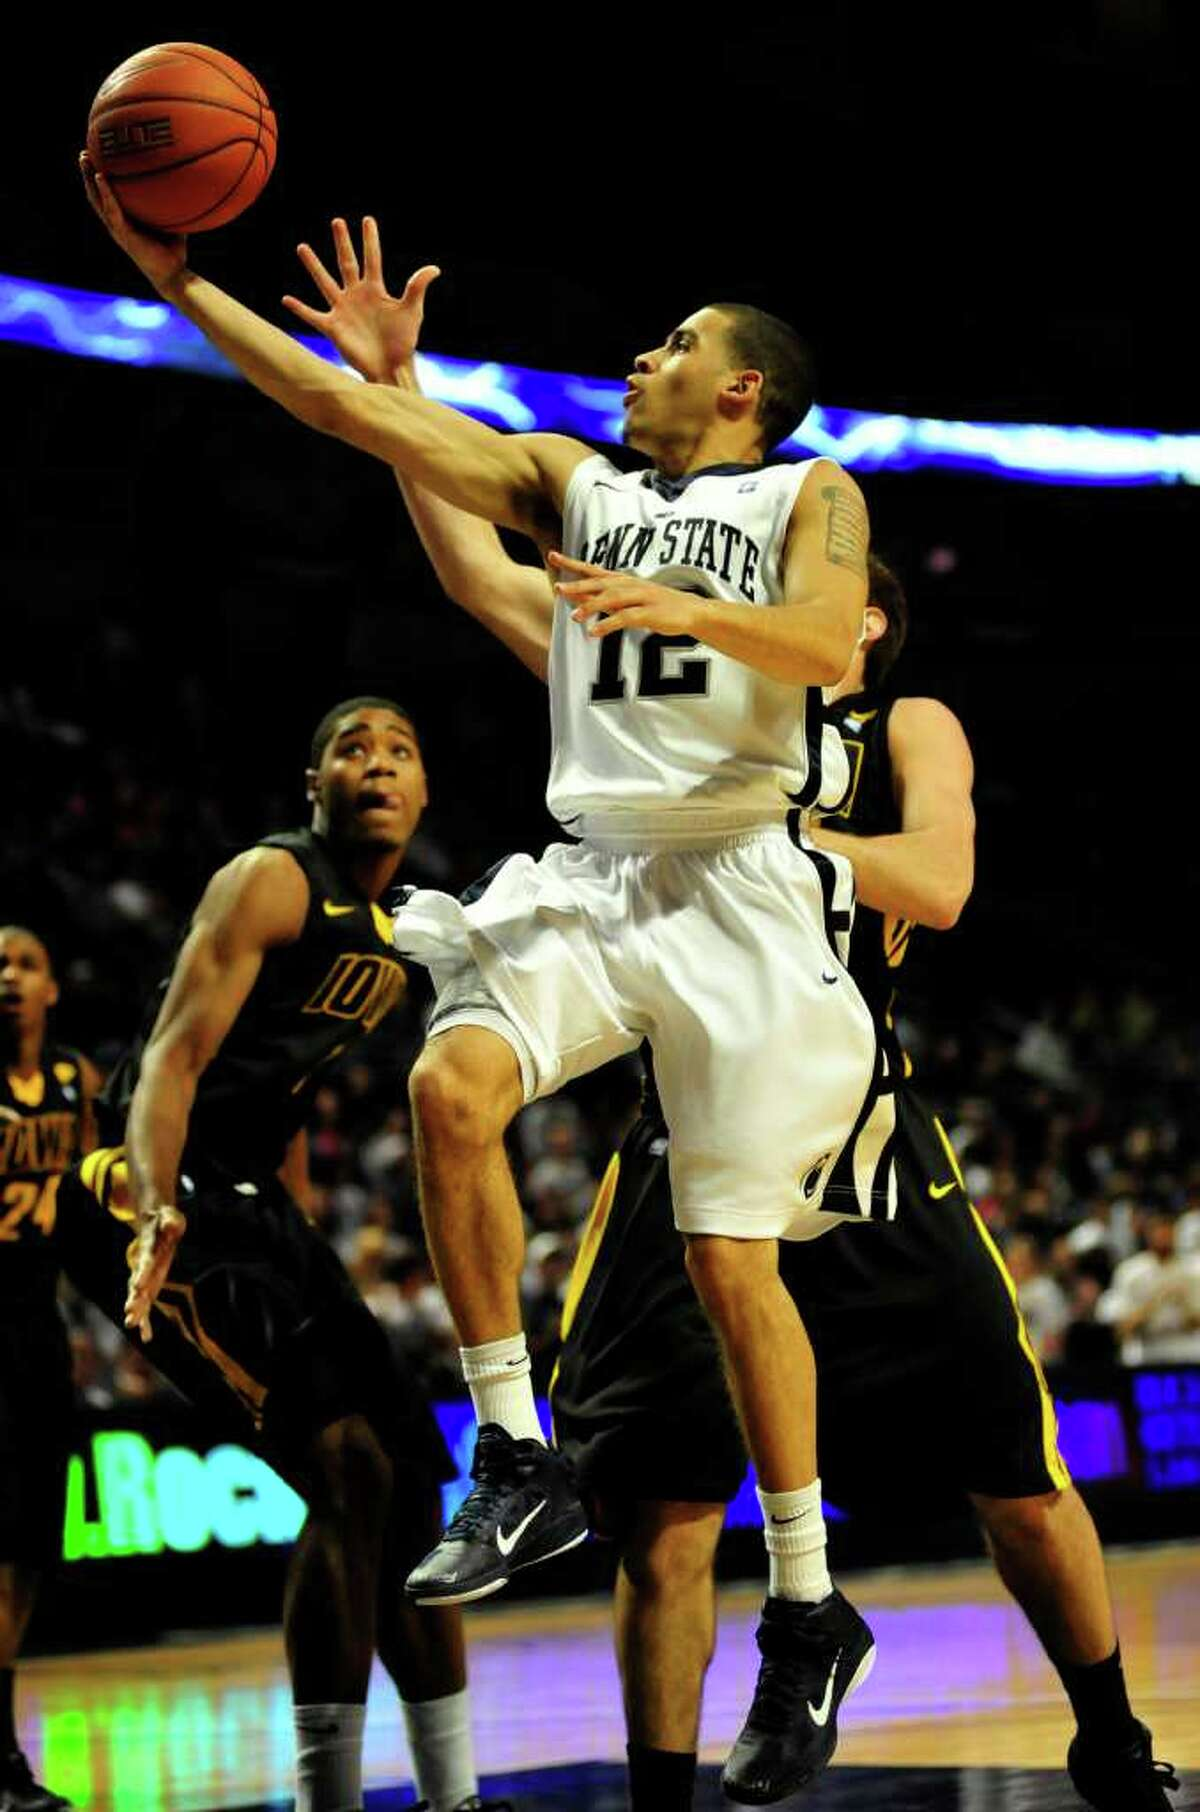 Penn State's Talor Battle shoots during the Iowa game Wednesday, Jan. 27, 2011. Penn State defeated Iowa 65-51. Centre Daily Times/Michelle Bixby